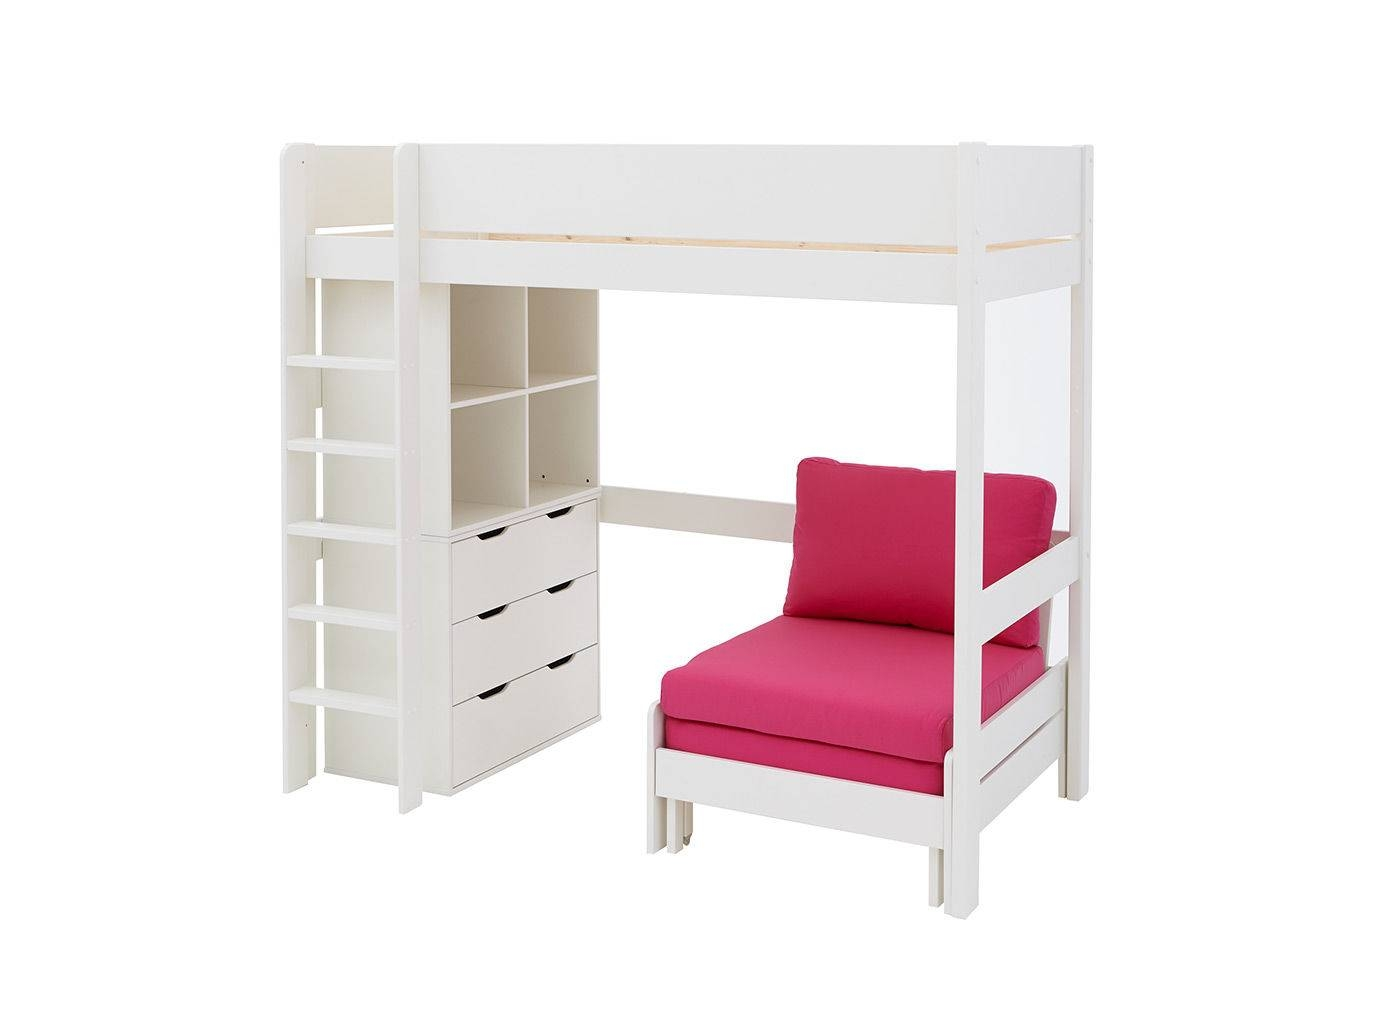 Buy Kids' High Sleepers At Dreams | Quality & Fun High Sleeper inside High Sleeper With Wardrobes and Futon (Image 1 of 15)